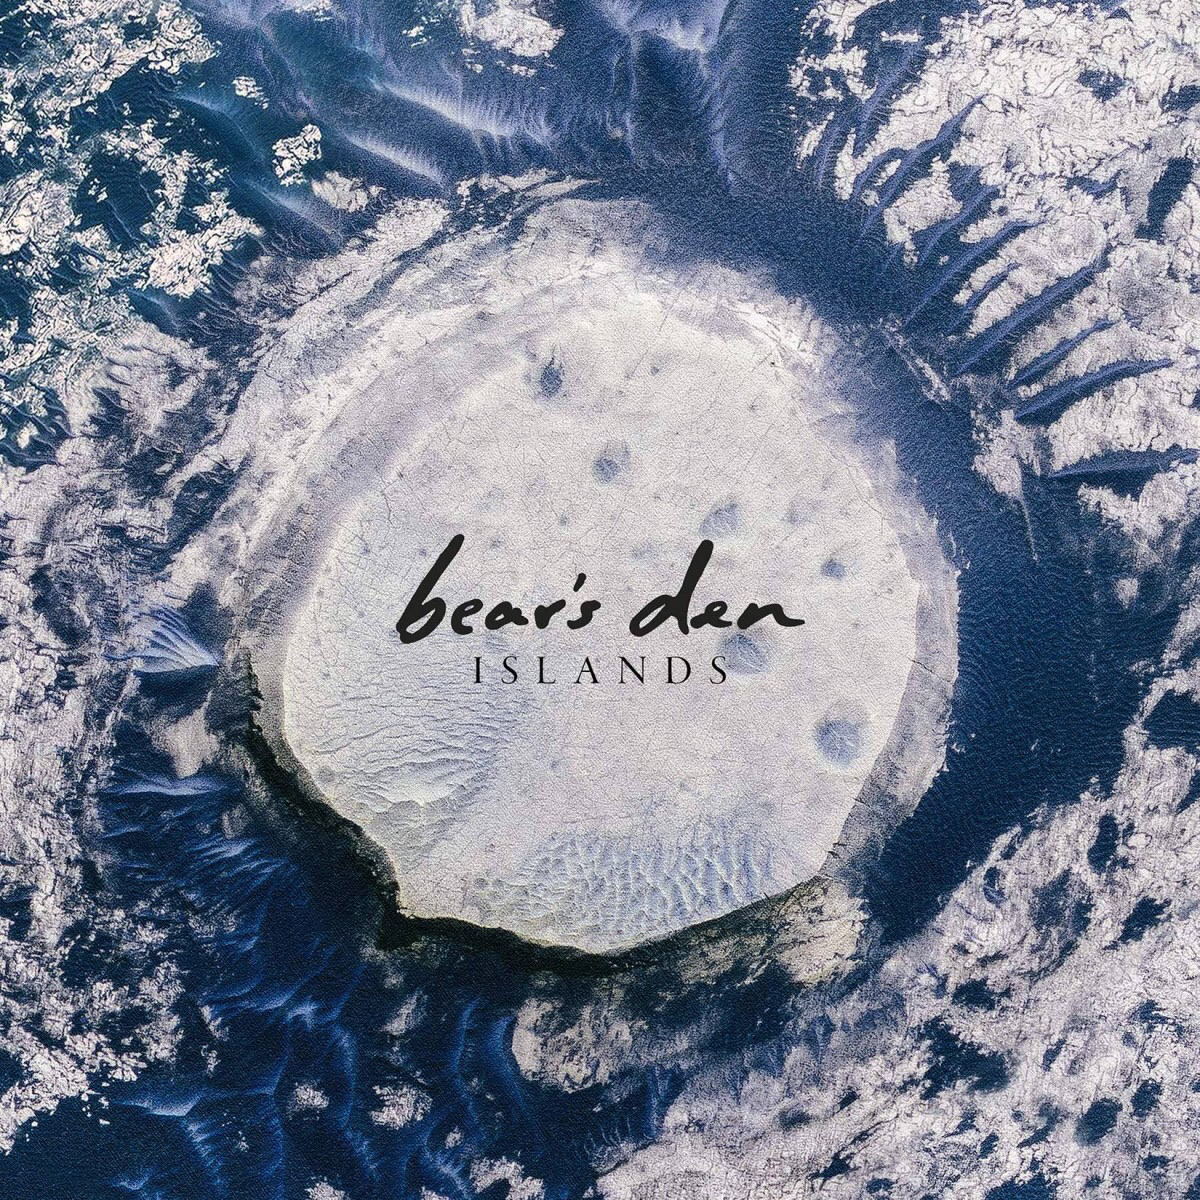 Bear's Den, 'Islands'